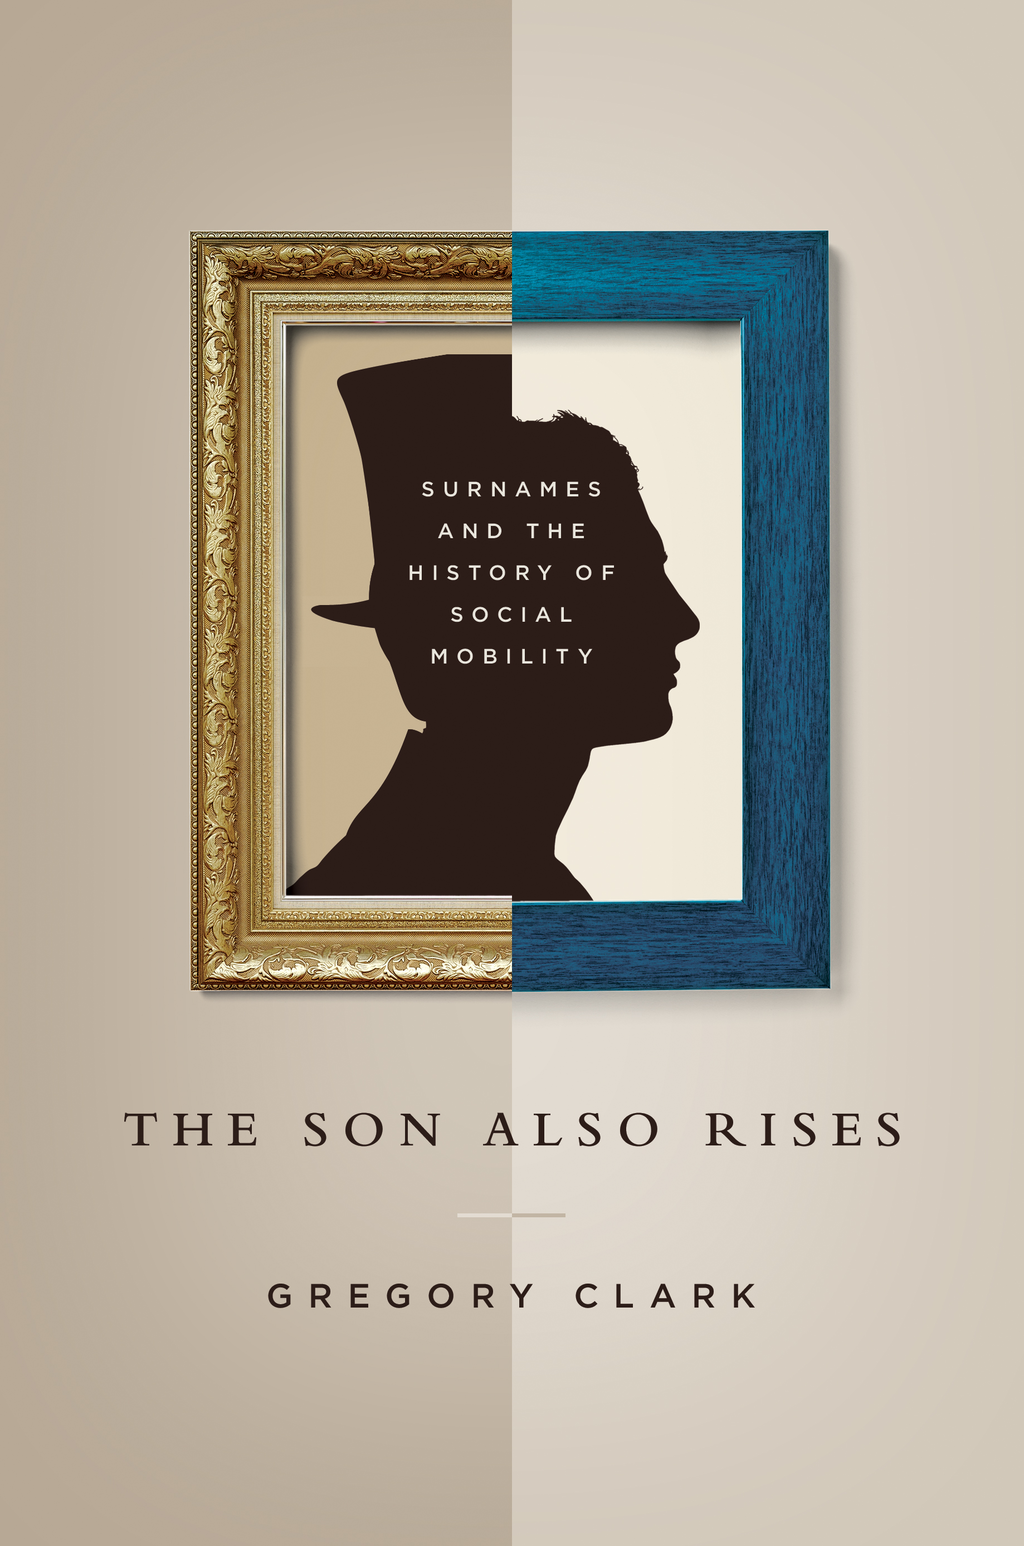 The Son Also Rises Surnames and the History of Social Mobility